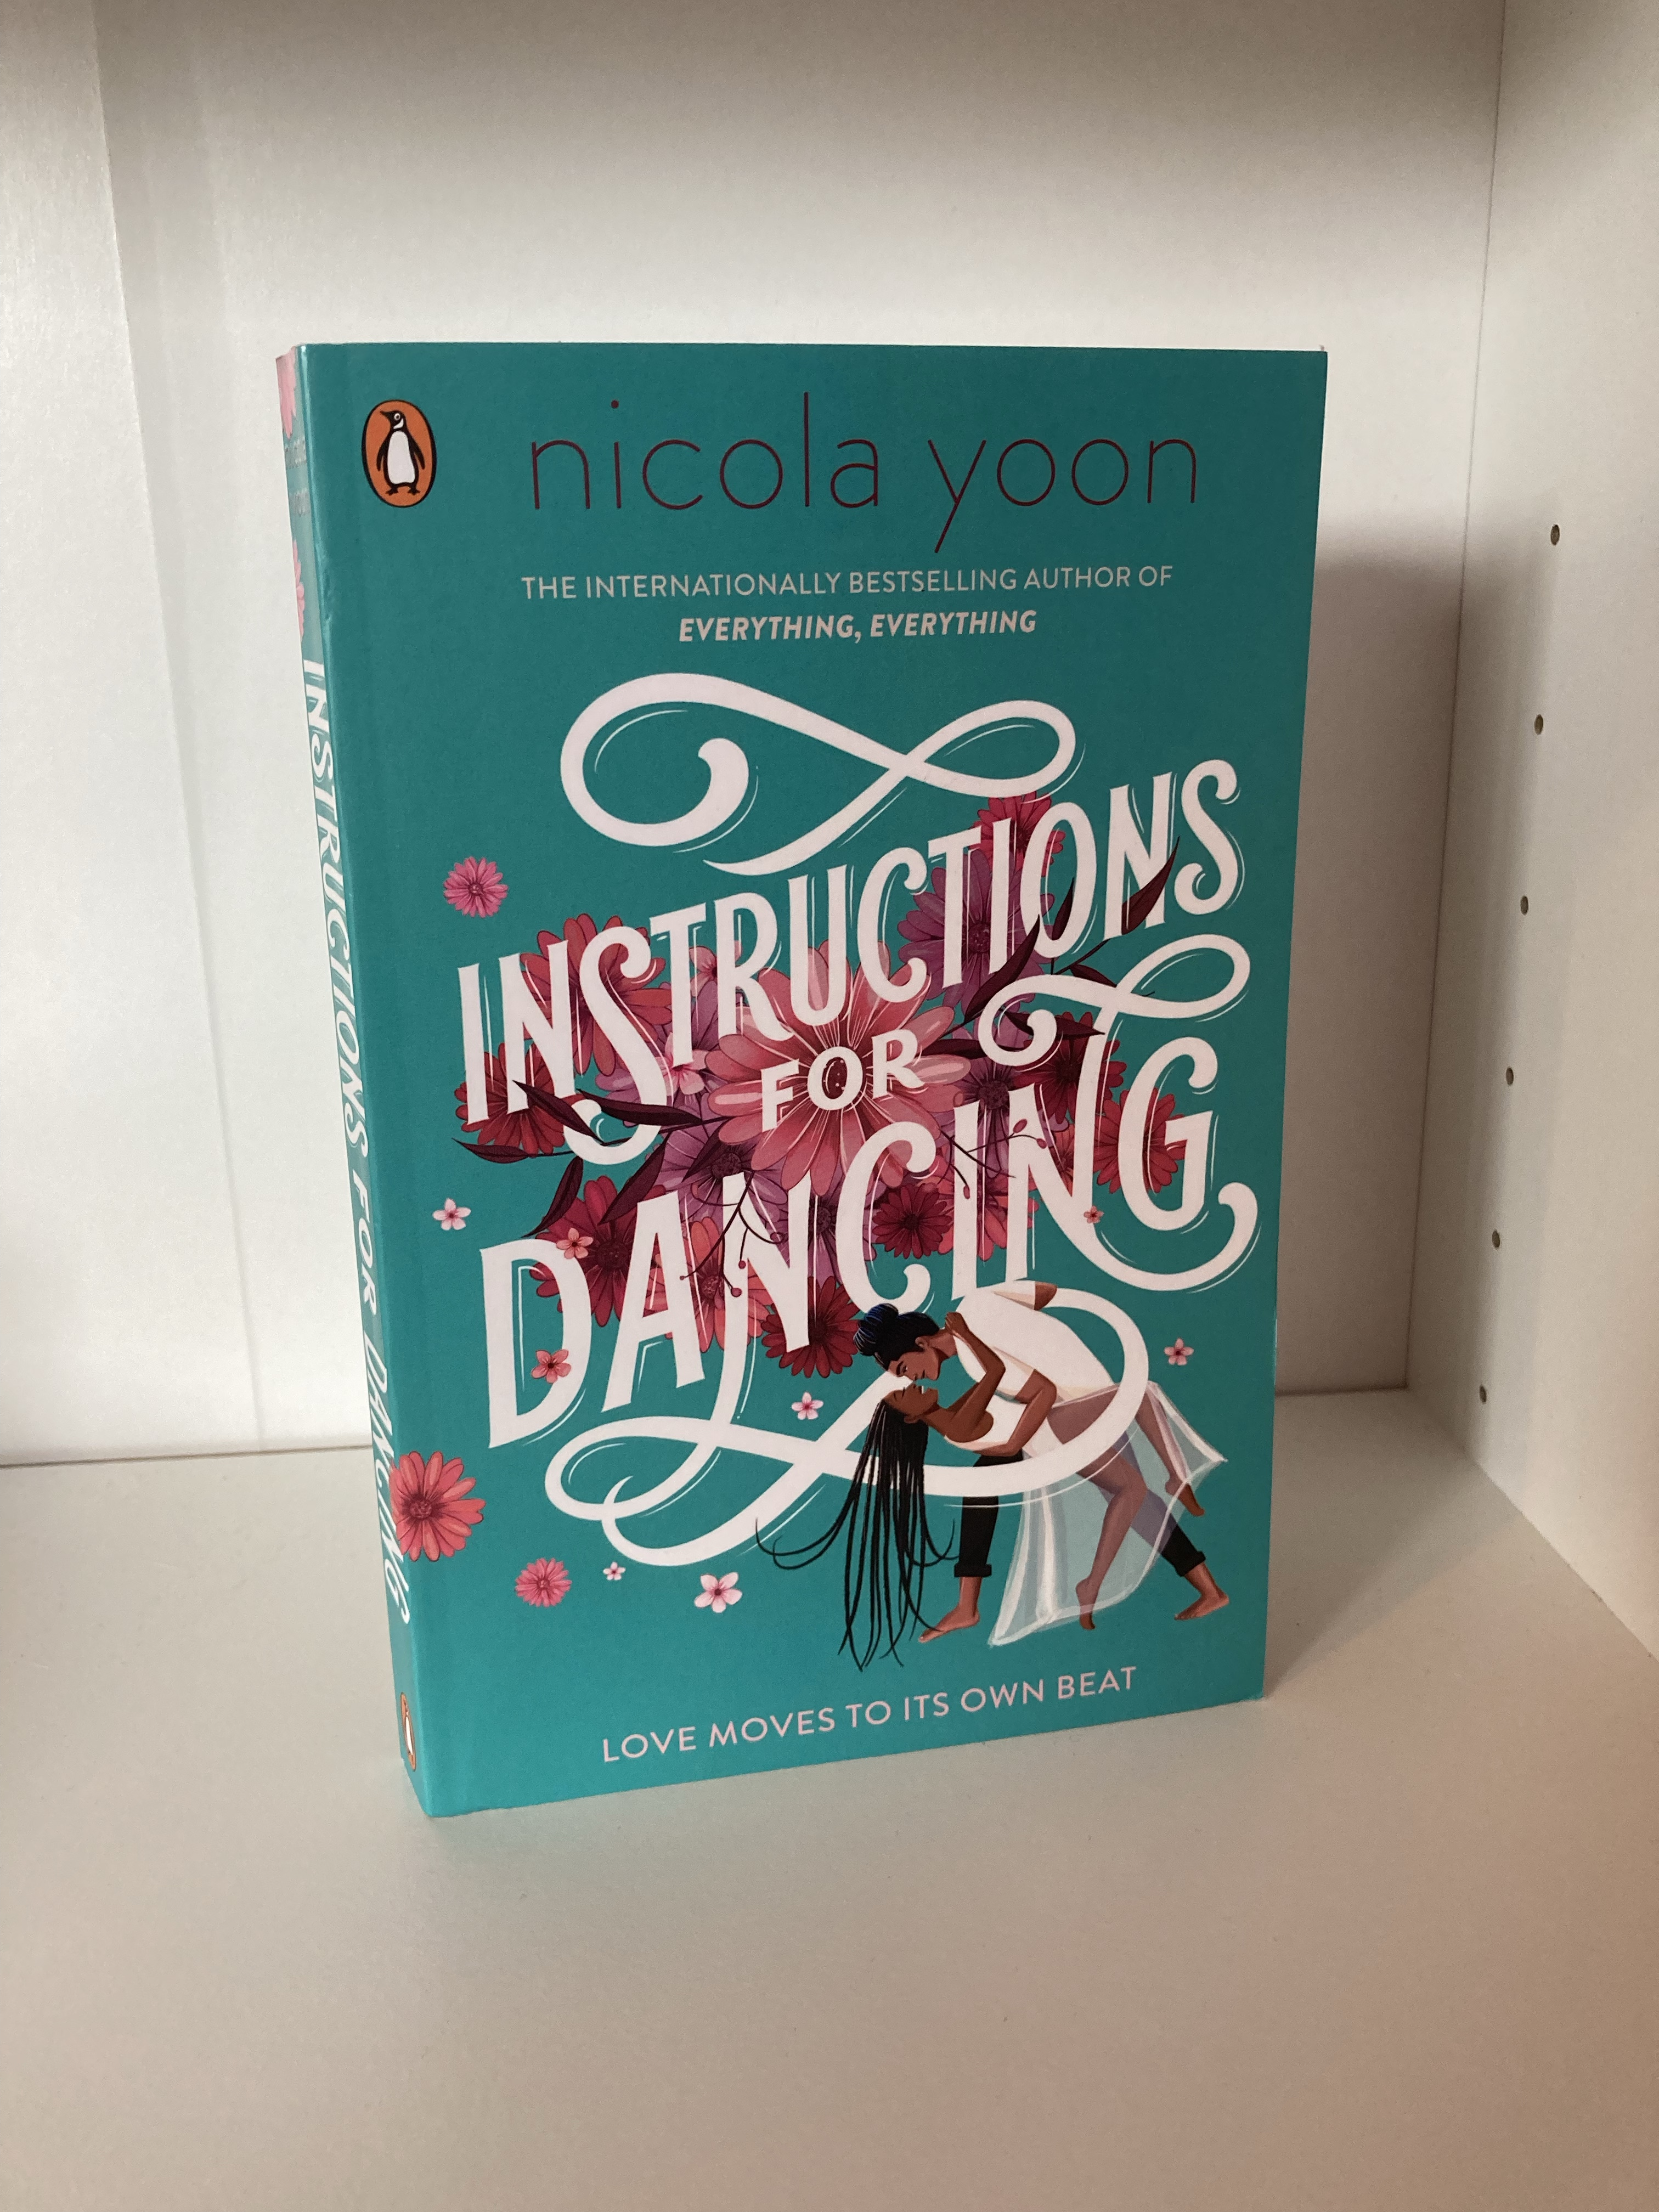 The cover of Instructions for Dancing by Nicola Yoon